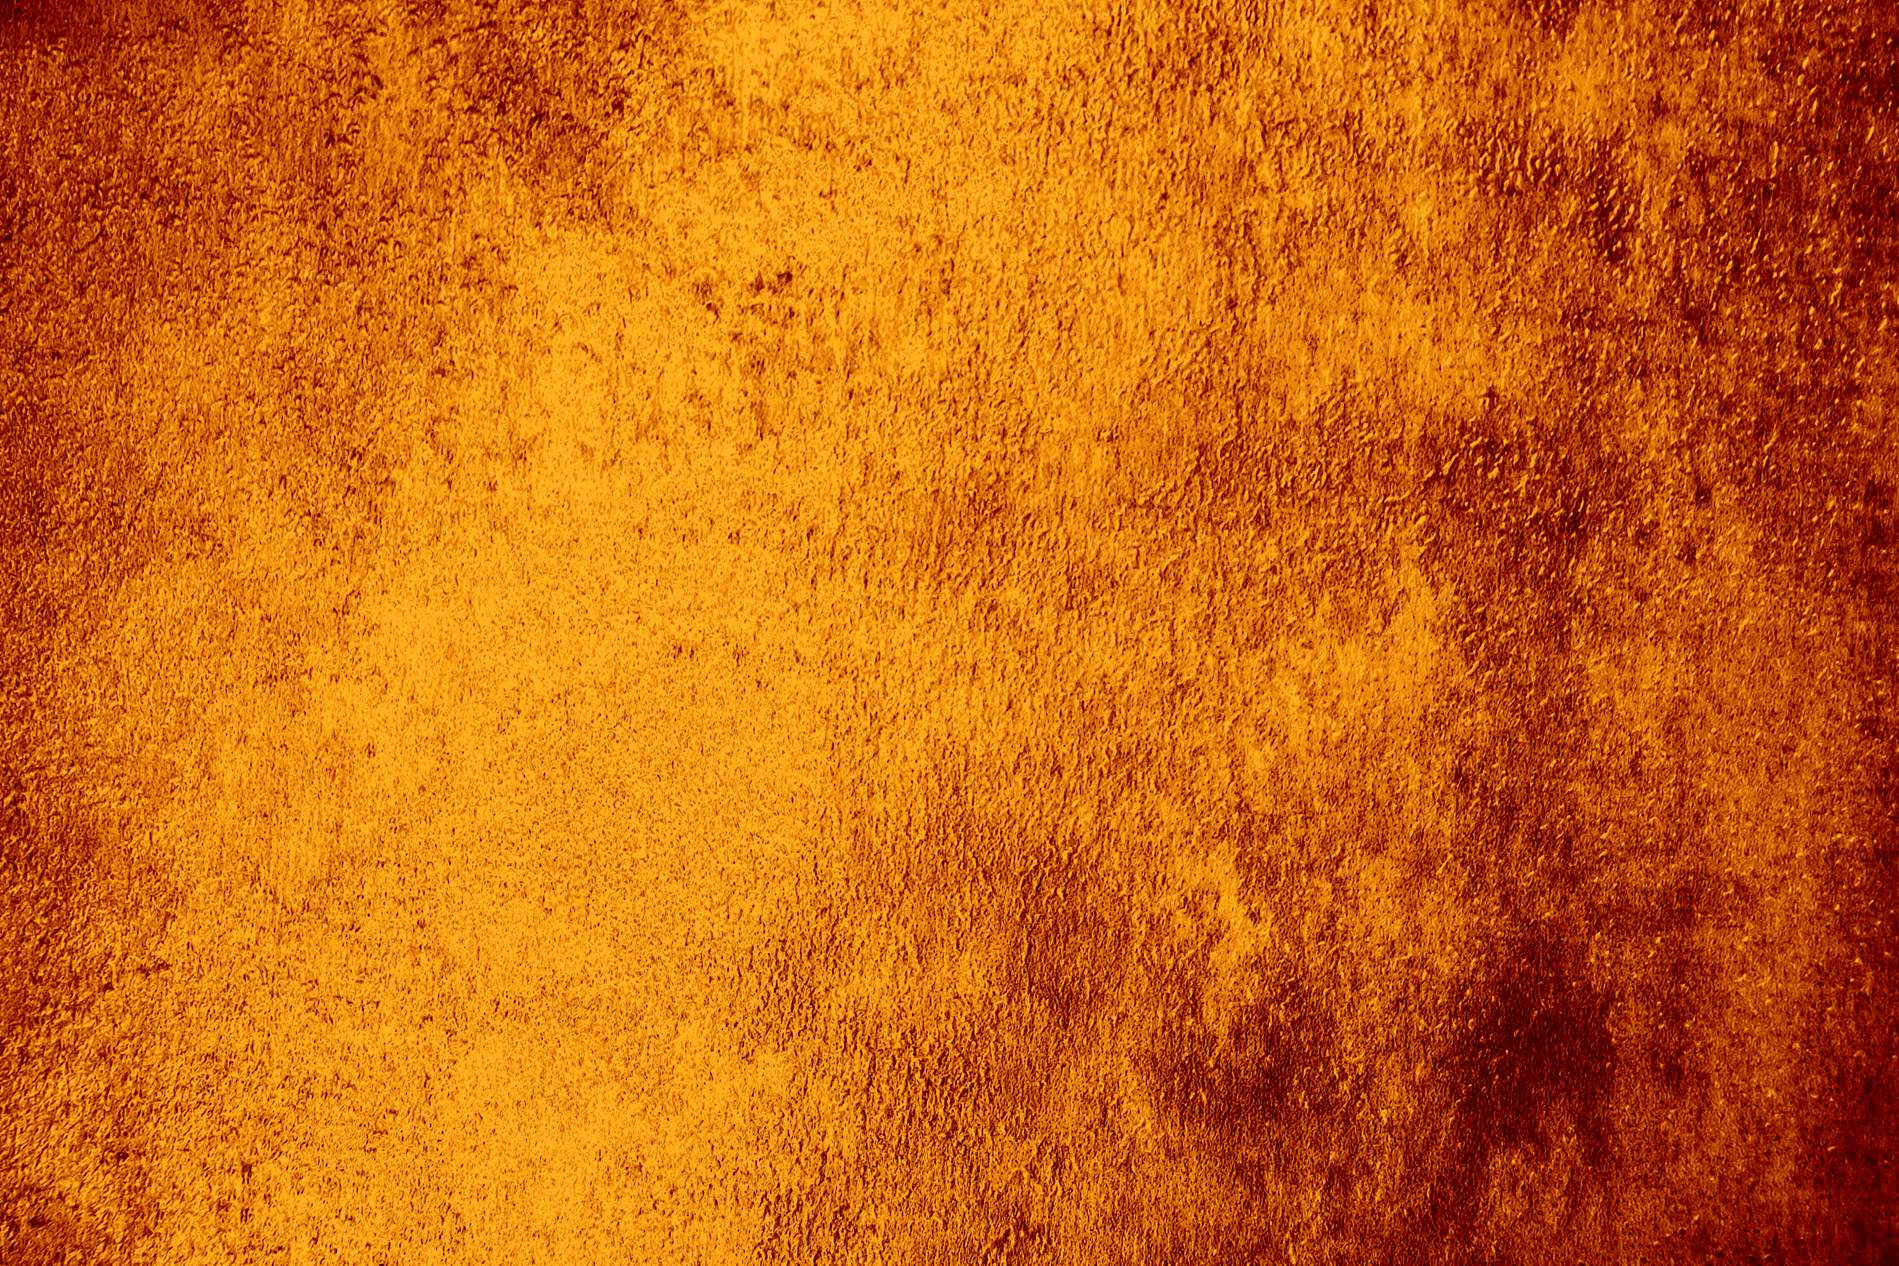 red yellow grunge background texture photohdx